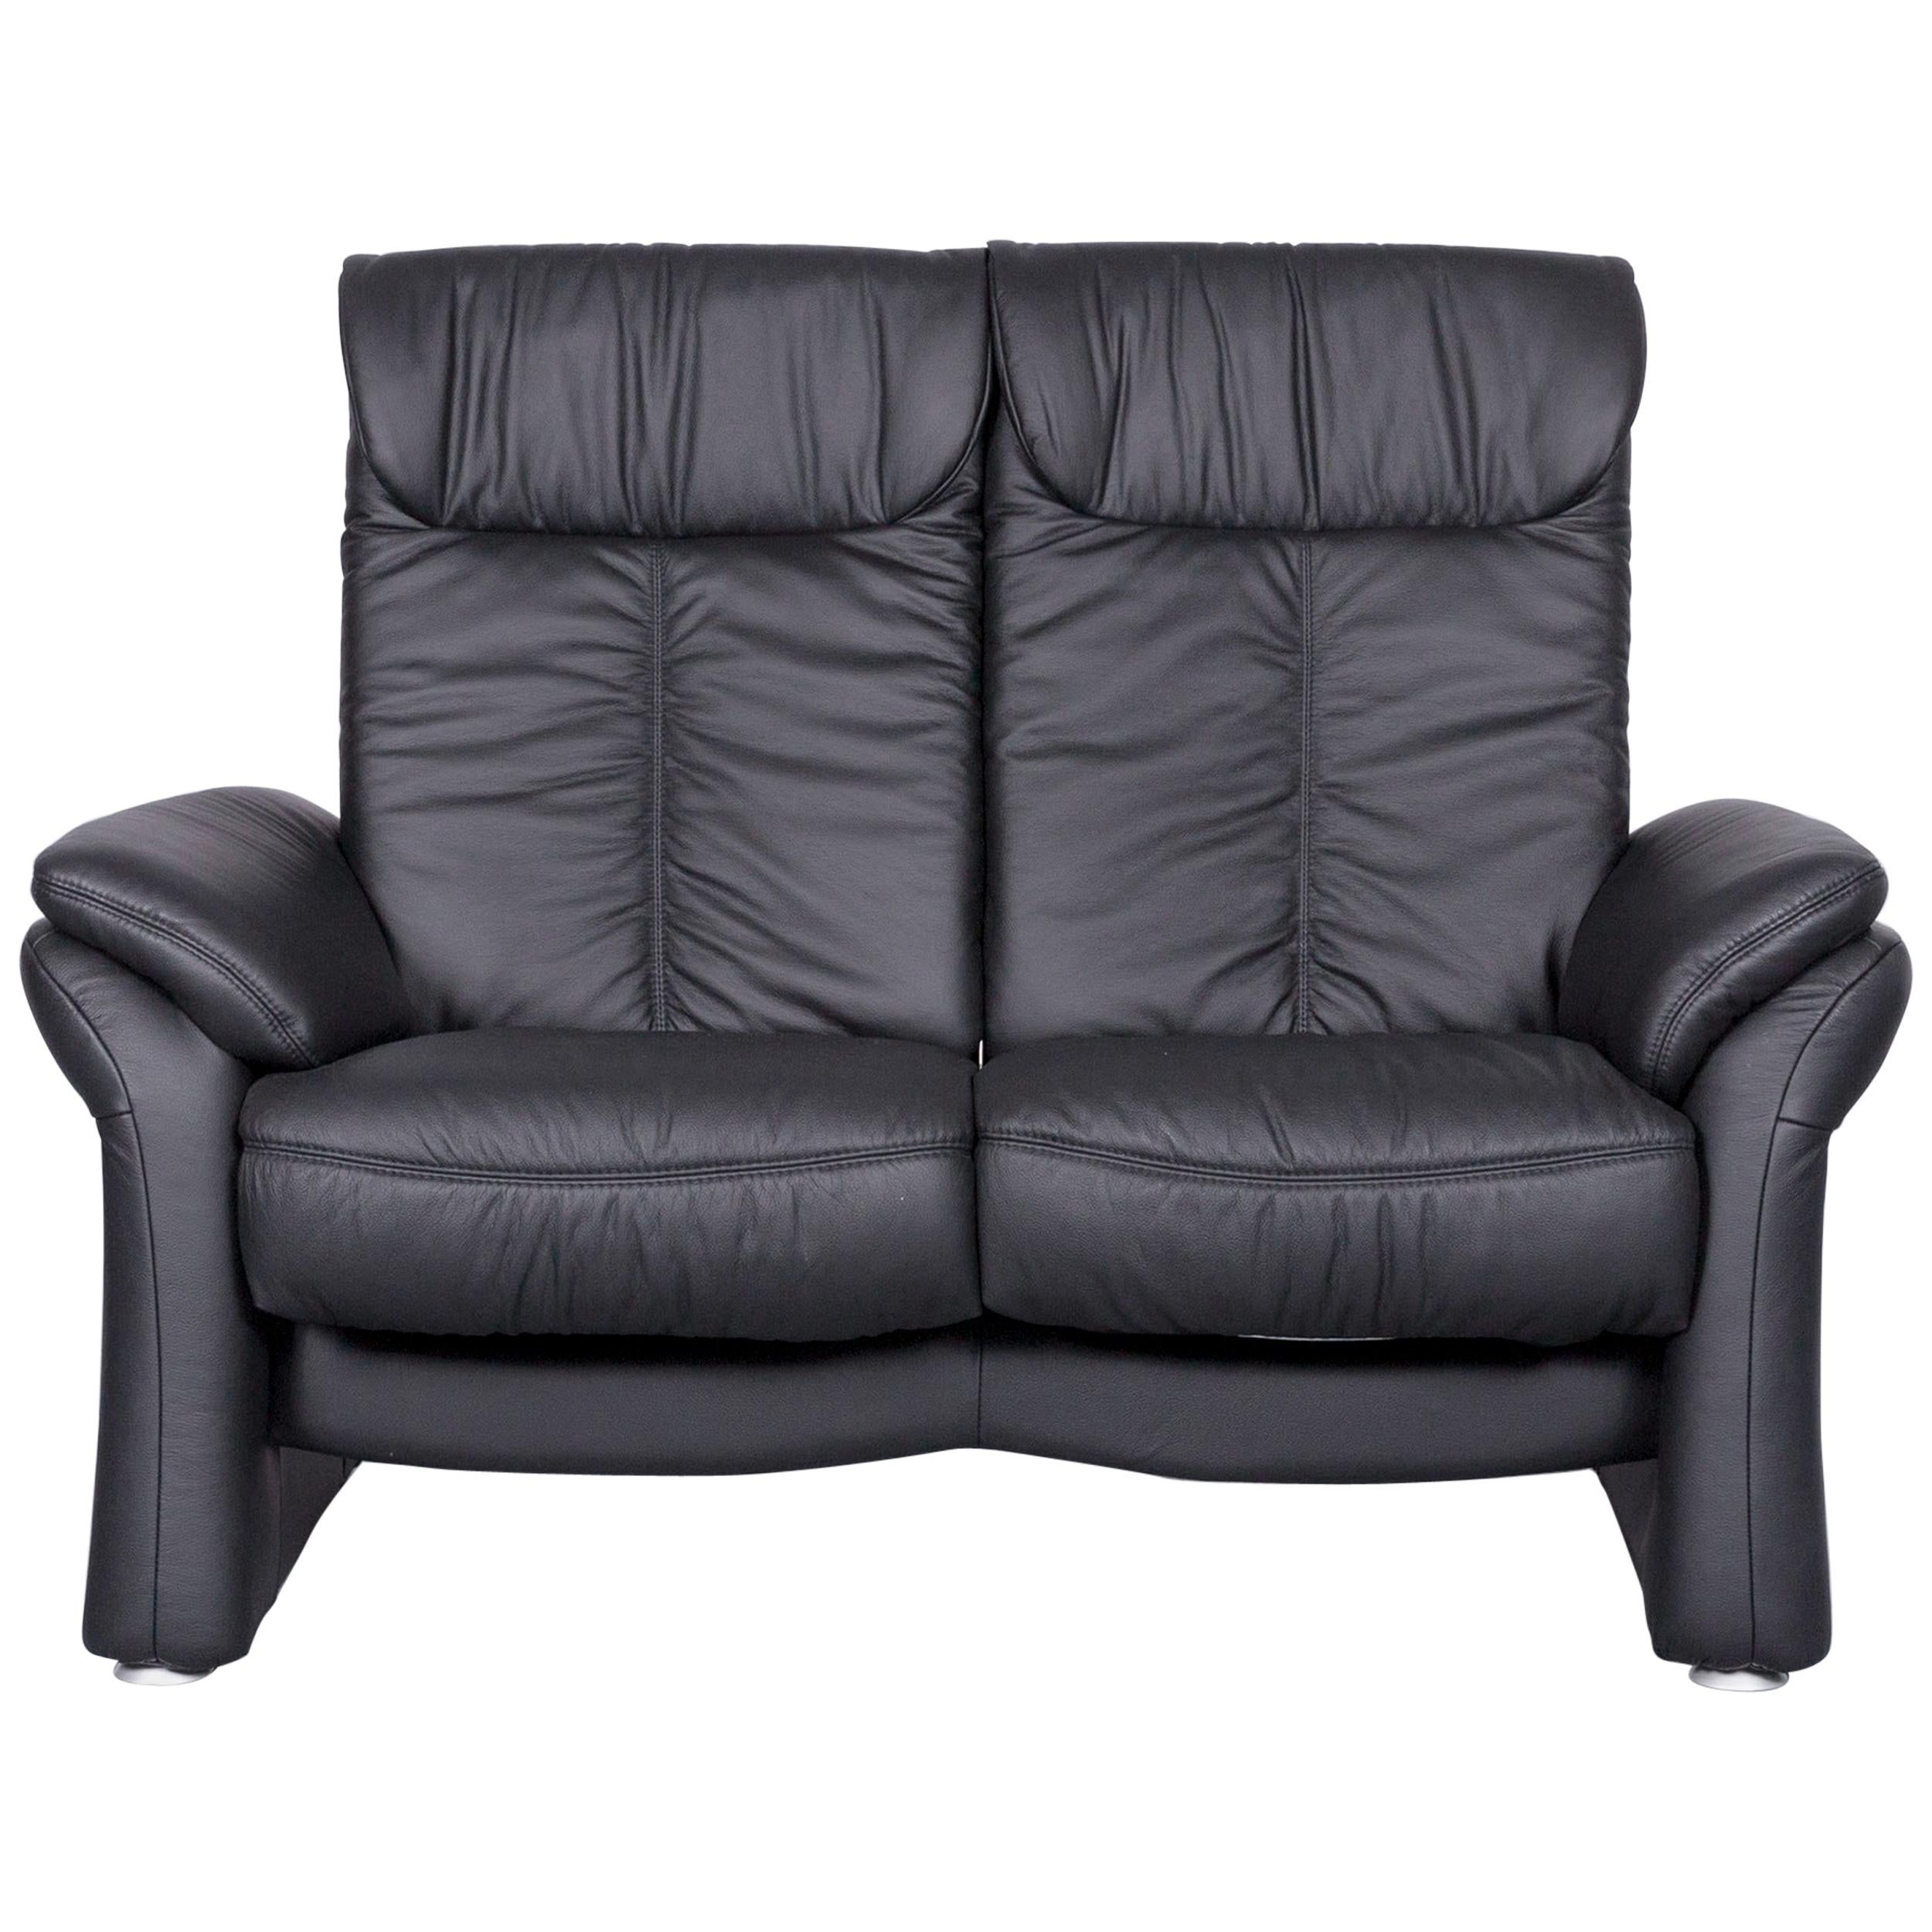 Casada Designer Leather Sofa Black Two Seat Couch Recliner